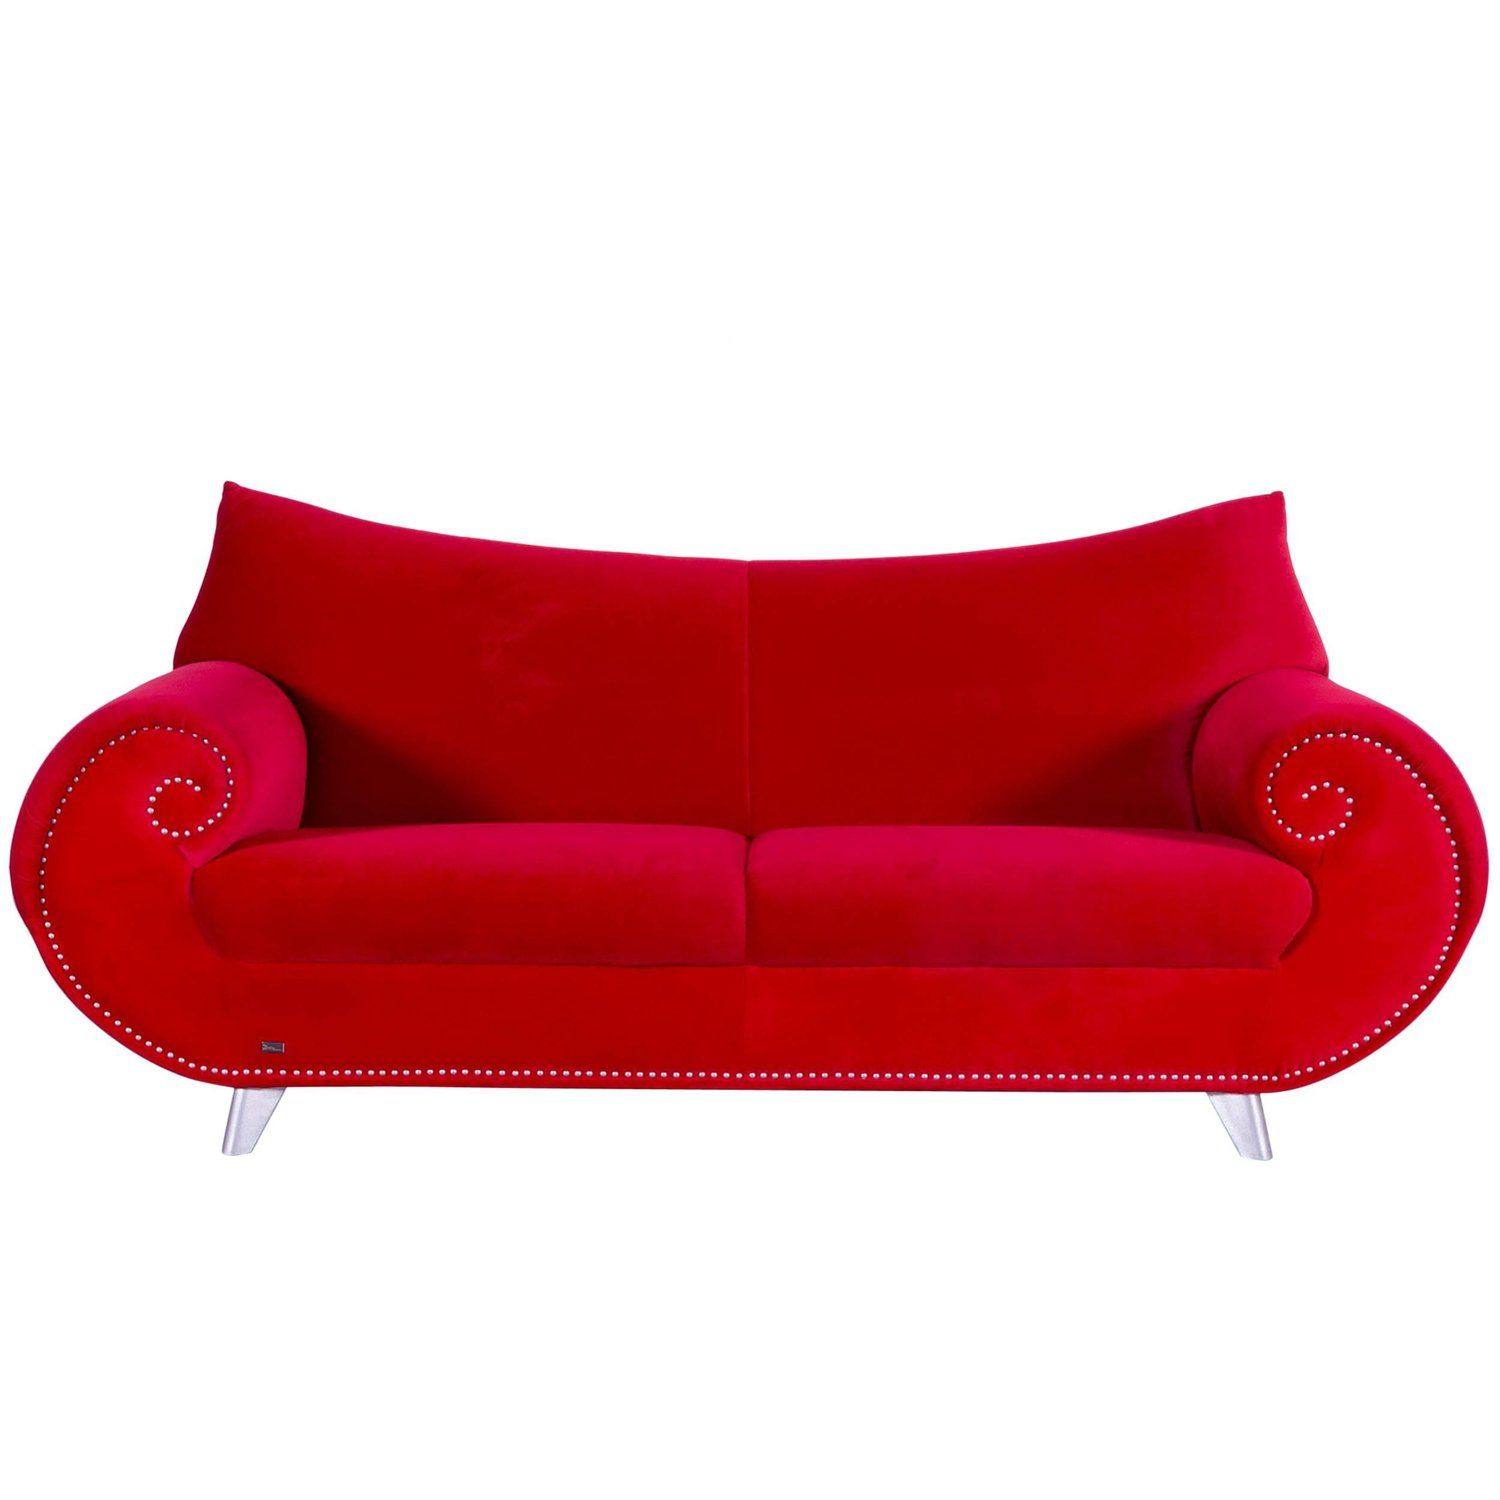 Bretz Gaudi Fabric Sofa Red Two Seat Couch Red Sofa Fabric Sofa Couch